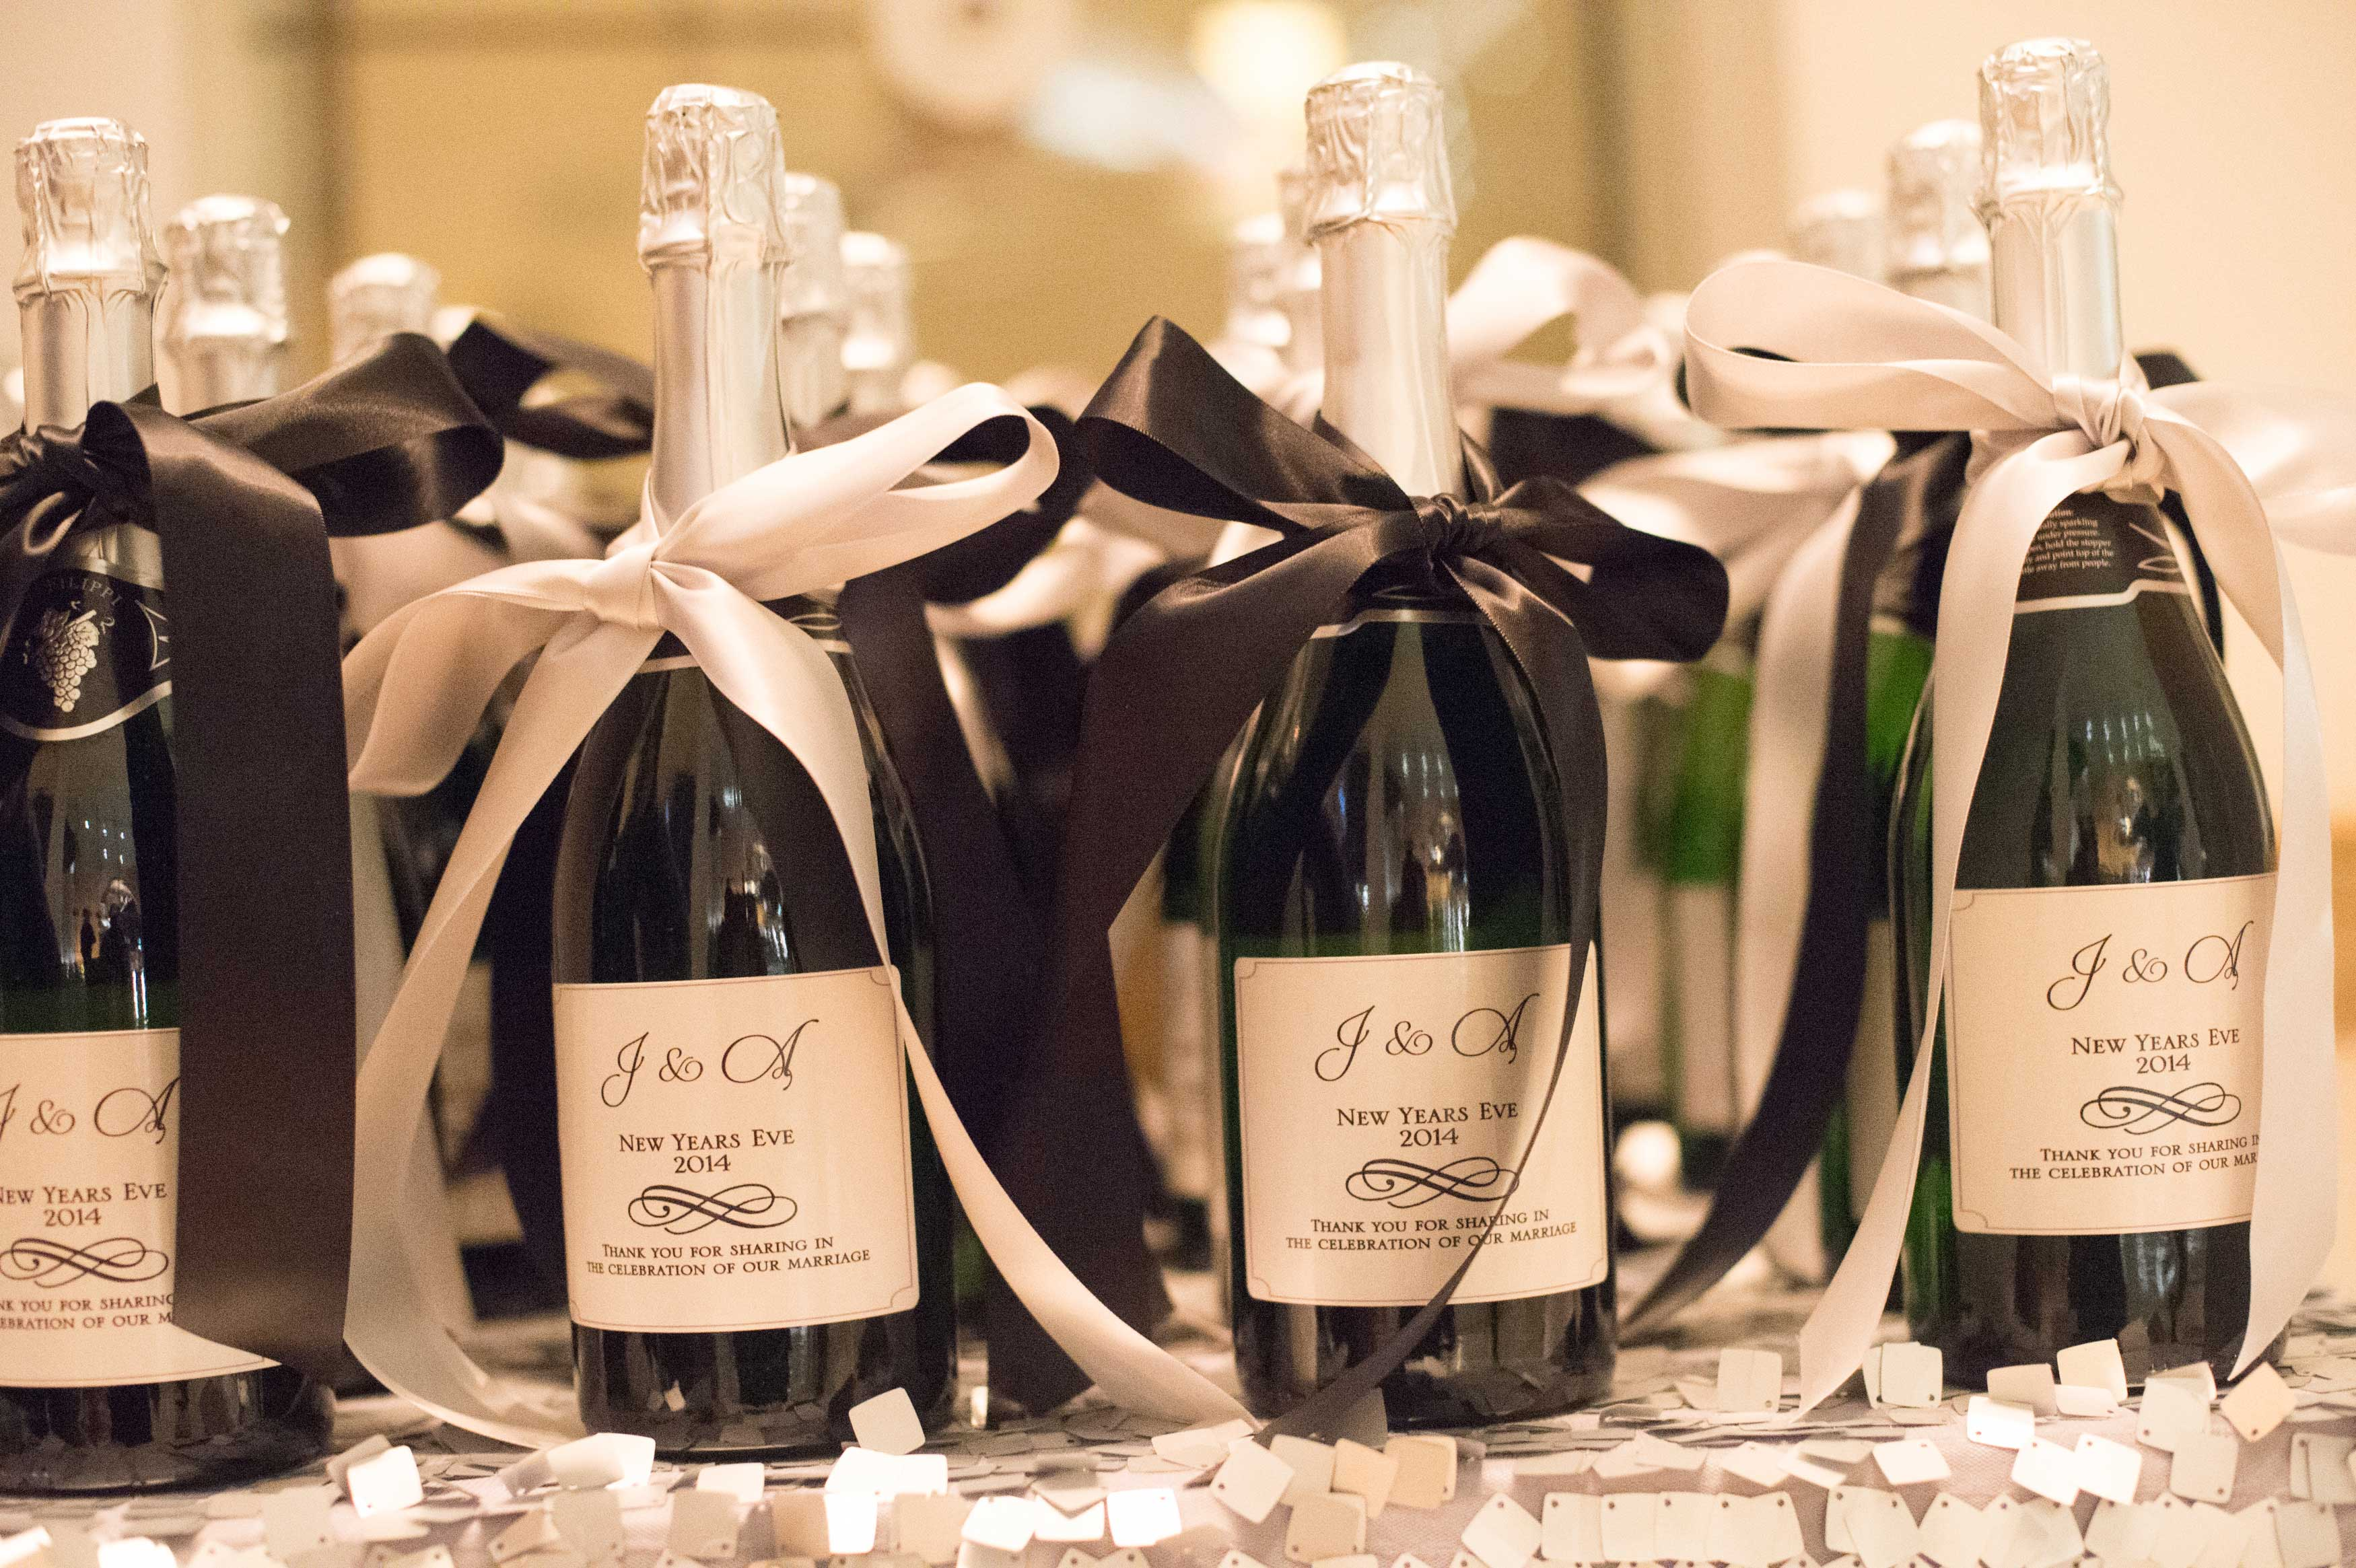 Champagne bottle favors for new year's eve wedding